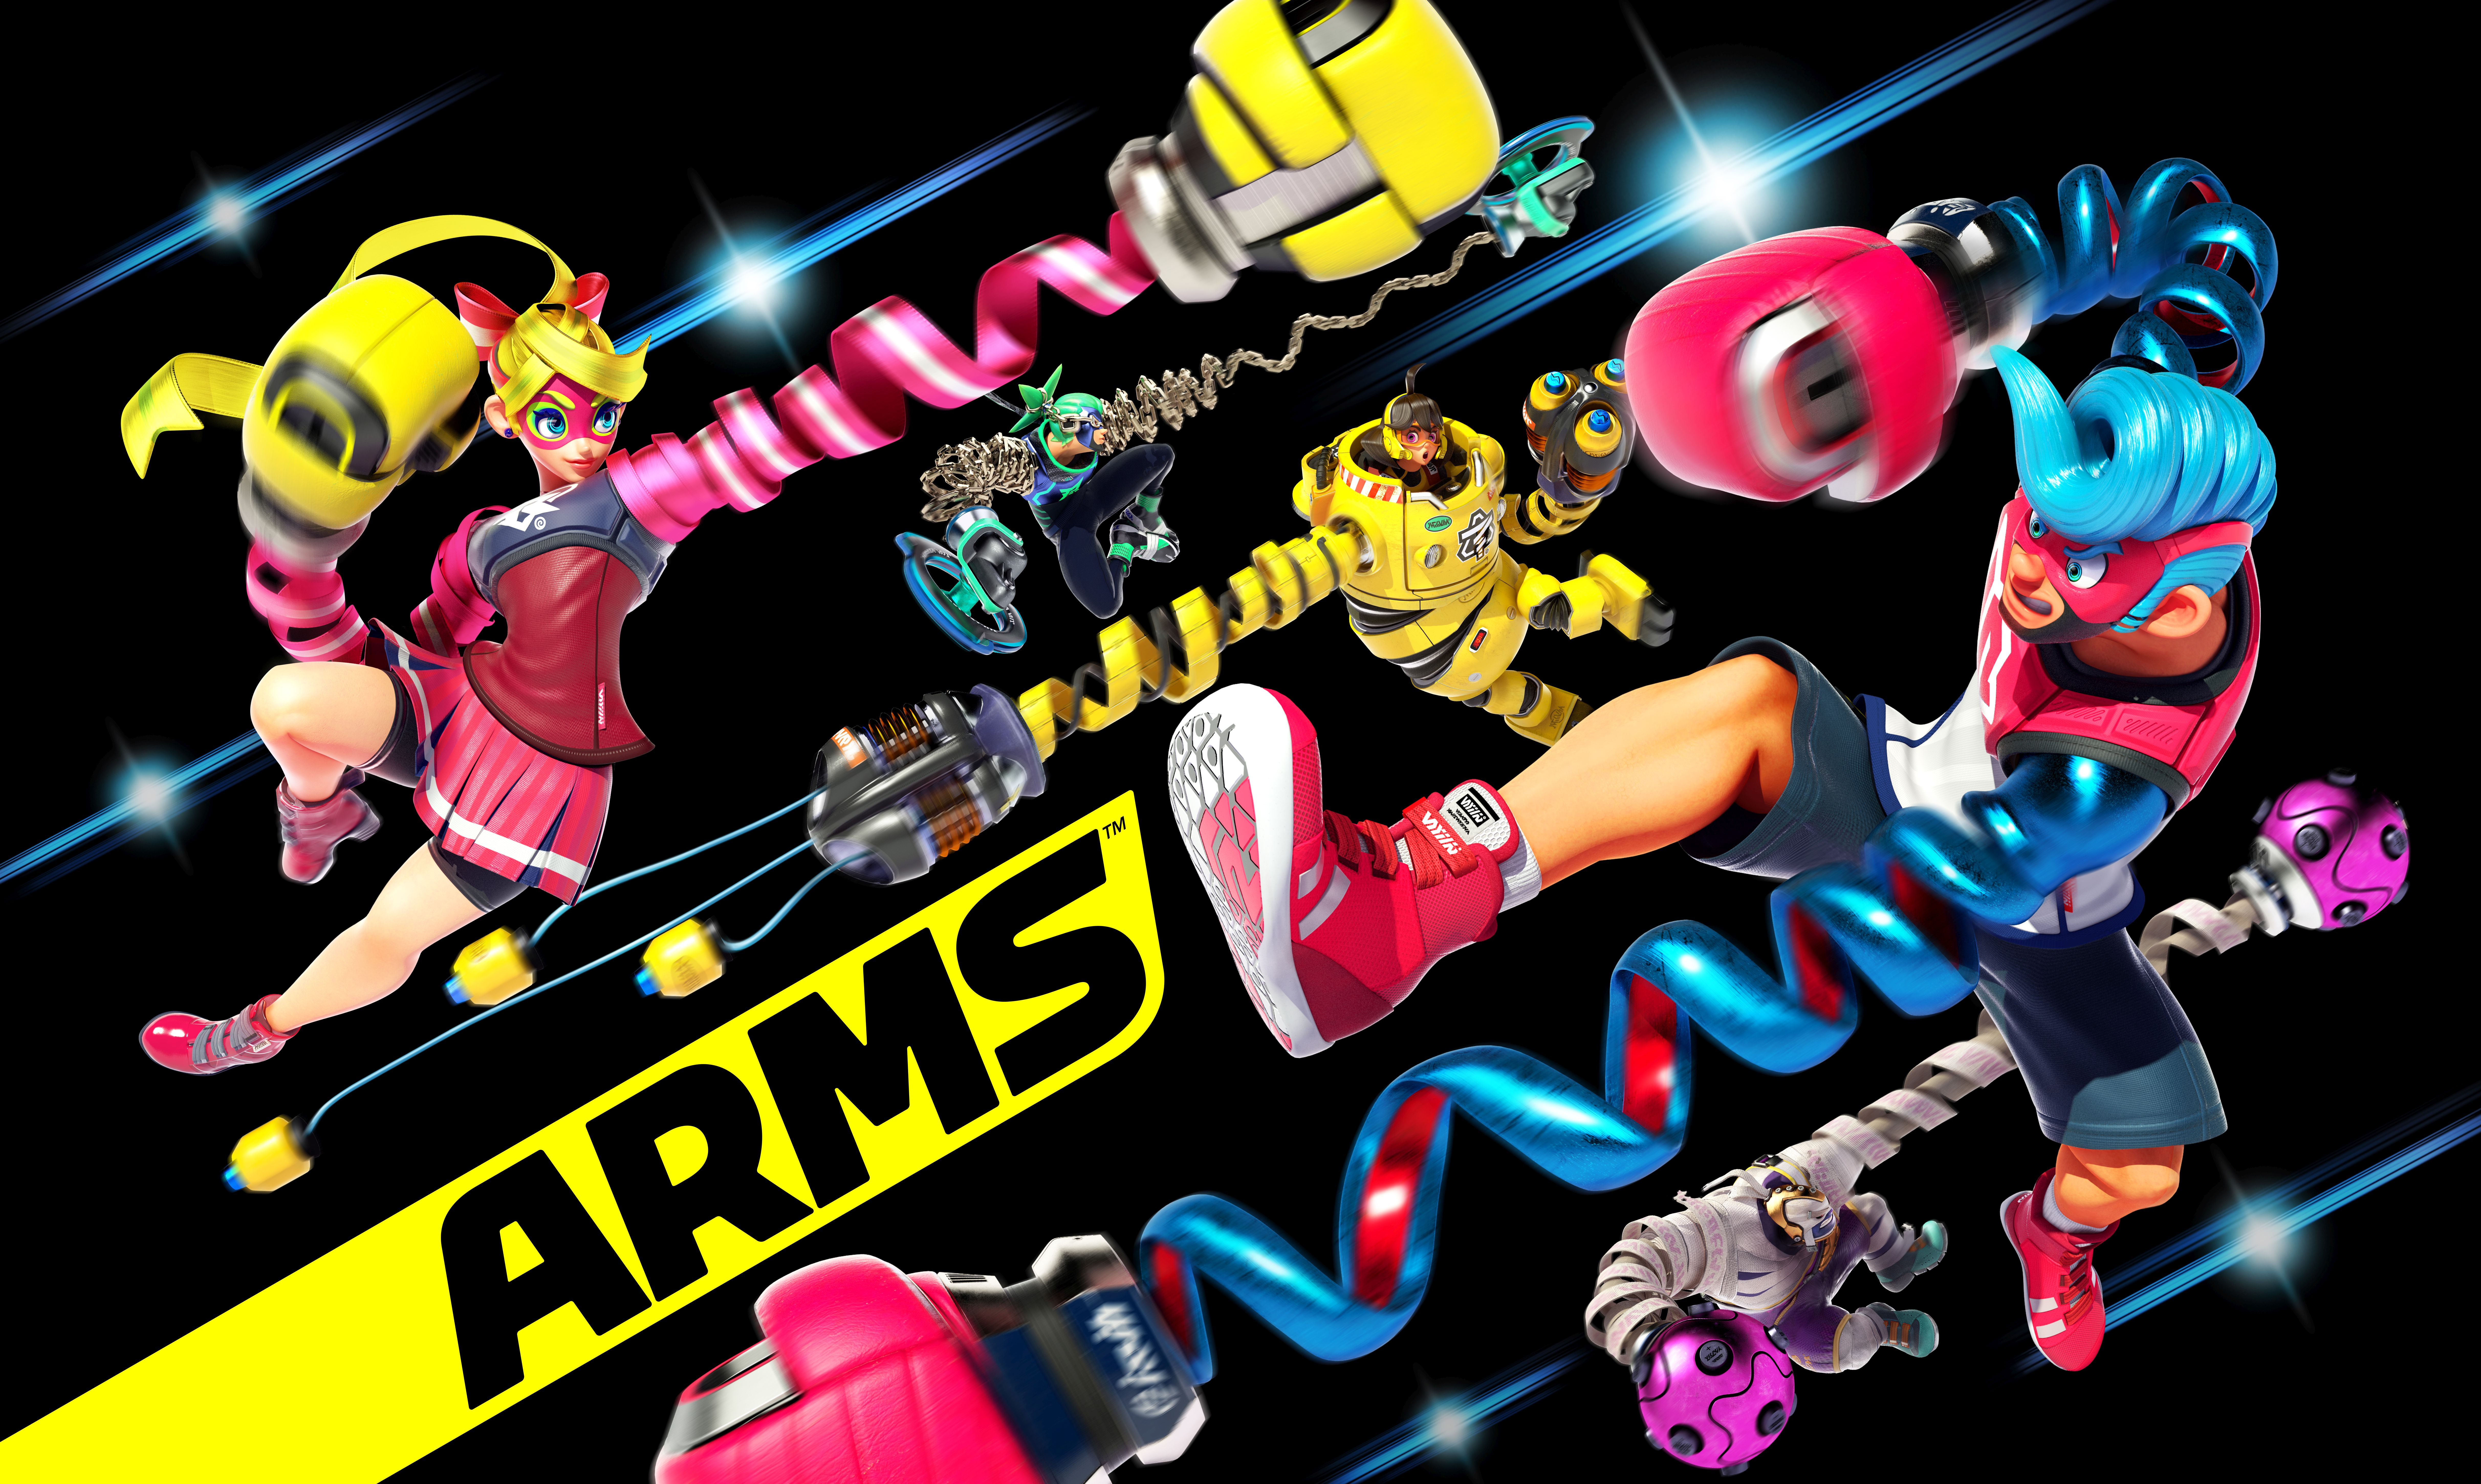 Arms_2017_05-17-17_049